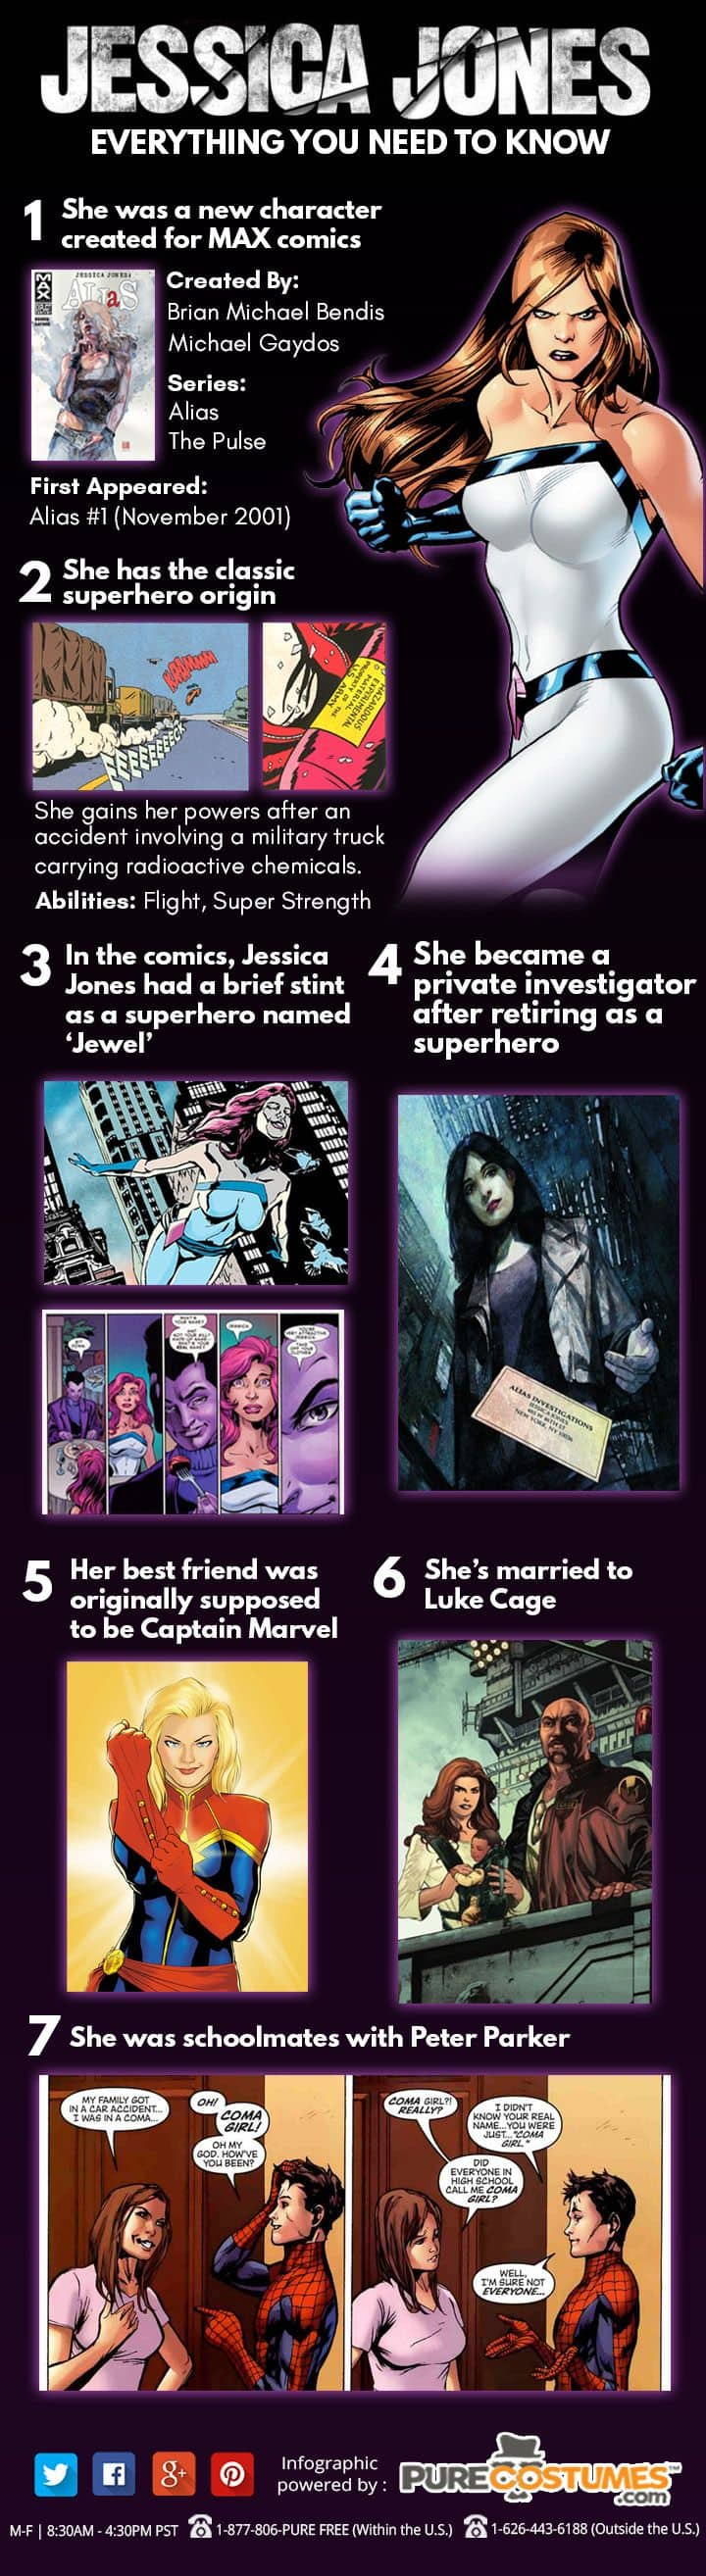 All you need to know about Jessica Jones